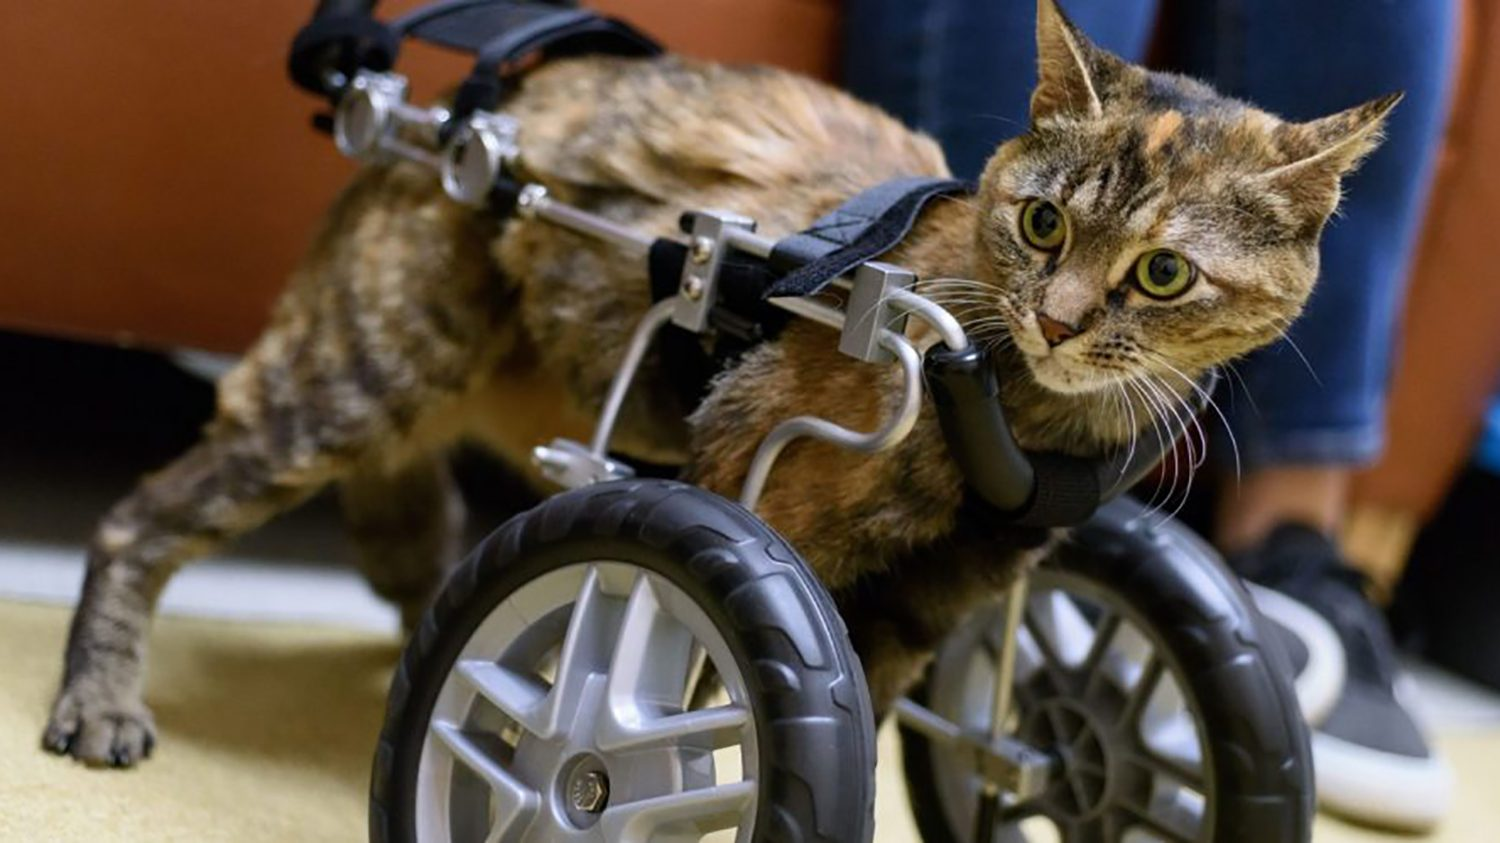 Cat in wheel cart without front legs